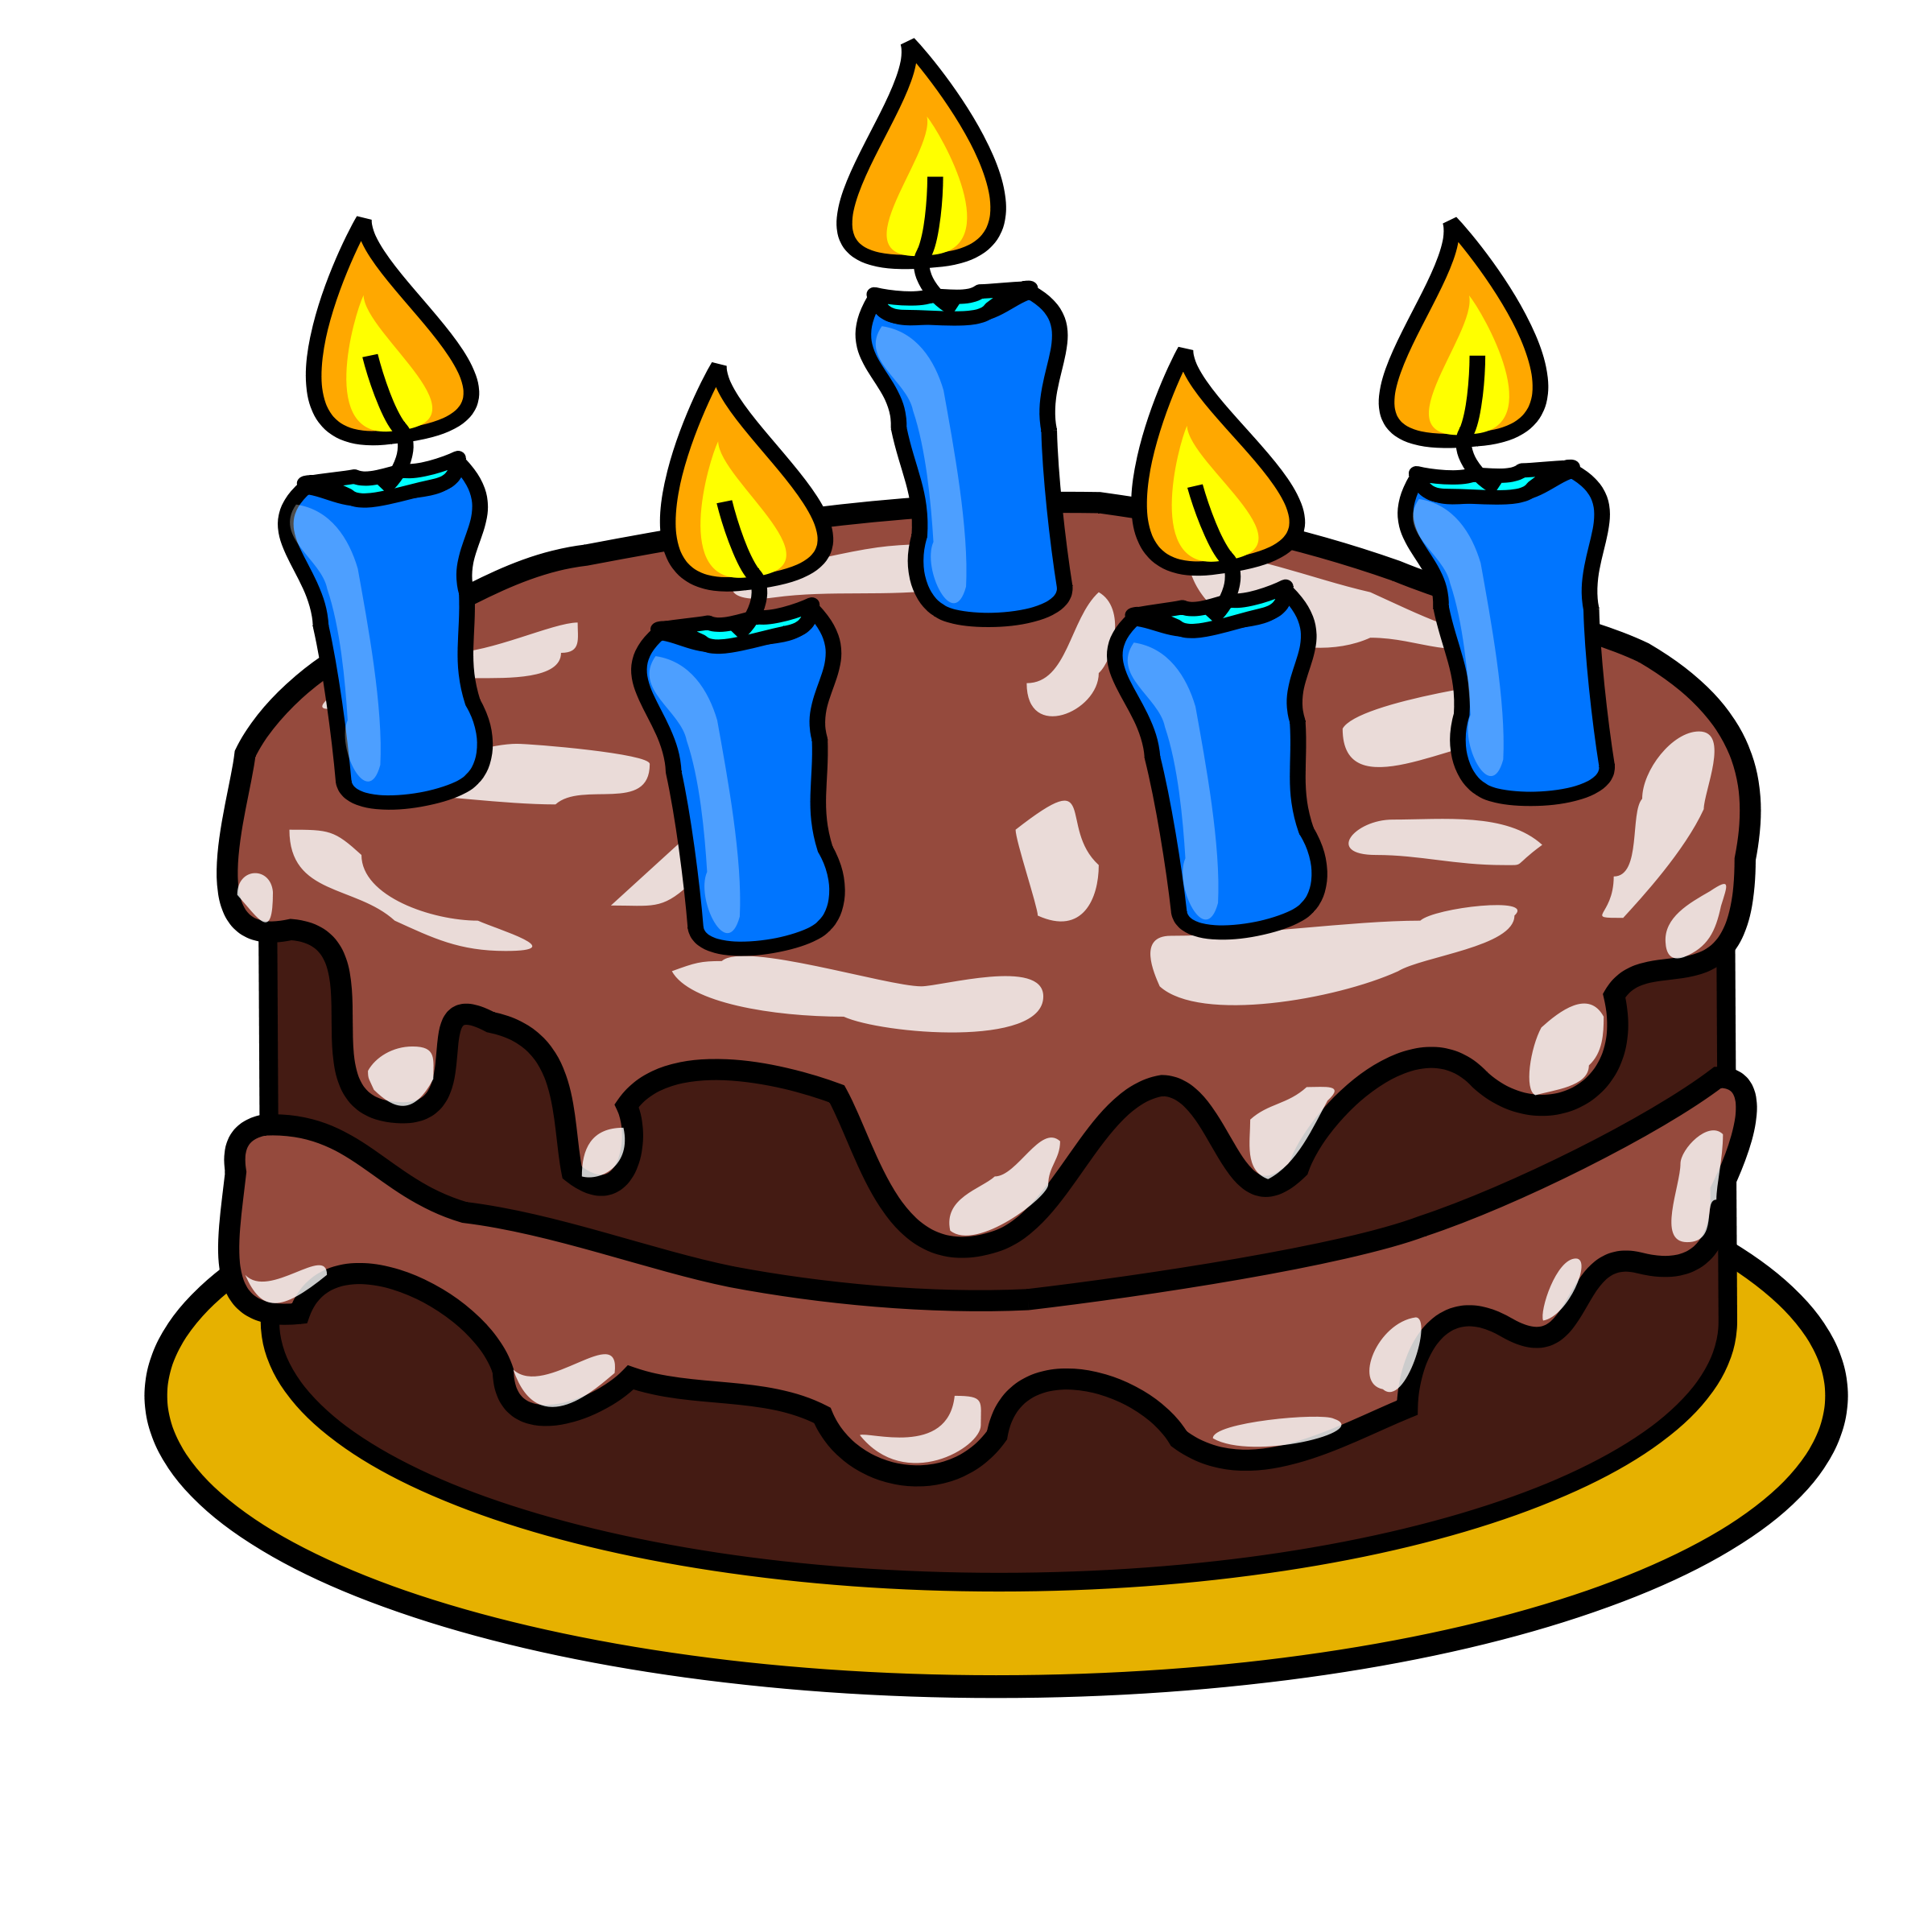 birthday-cake-pictures-clip-art-6 | pubzday